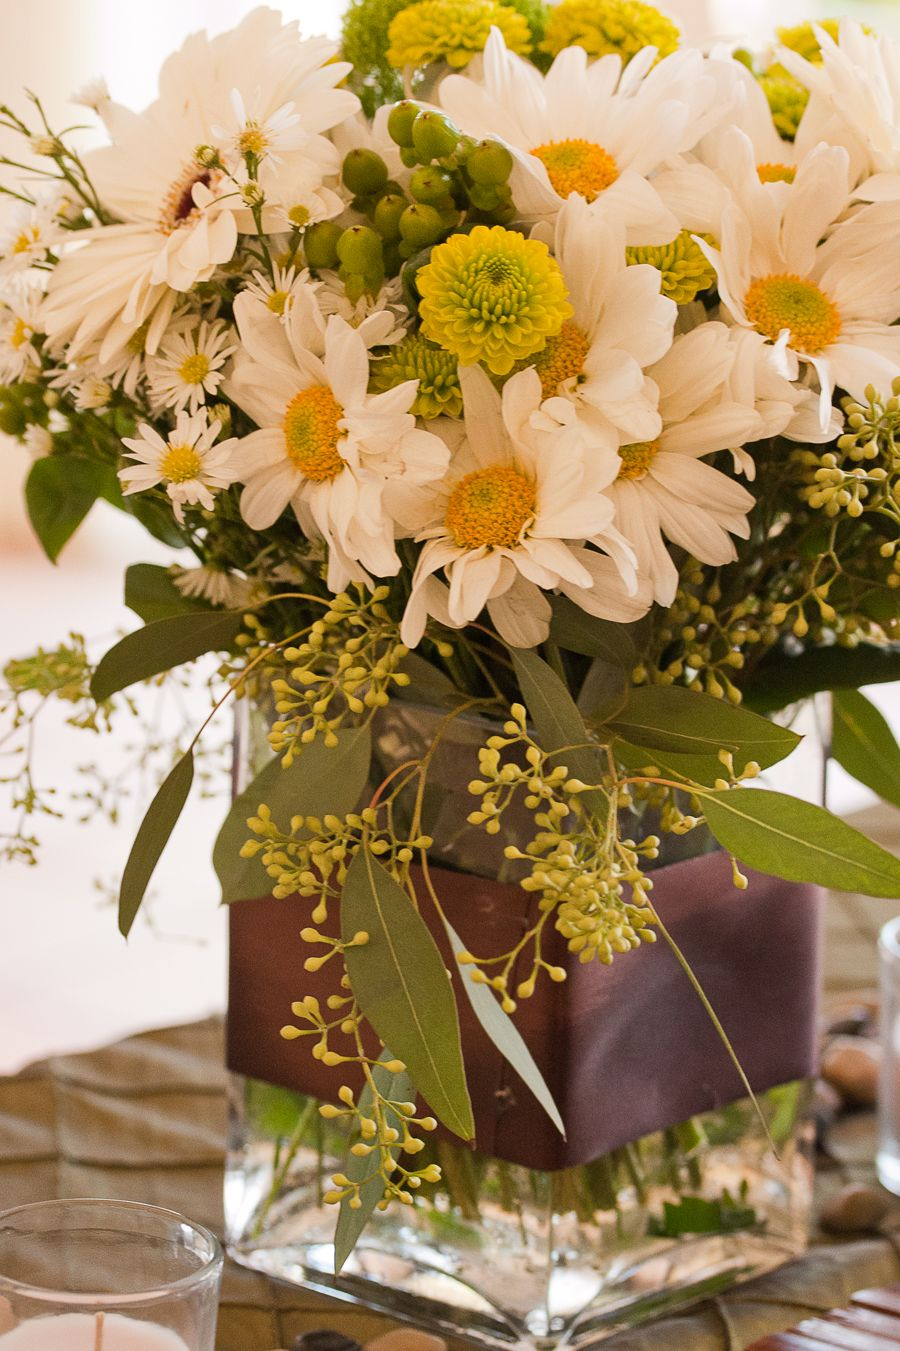 Daisy flower arrangement centerpieces daisy centerpiece flower daisy flower arrangement centerpieces daisy centerpiece izmirmasajfo